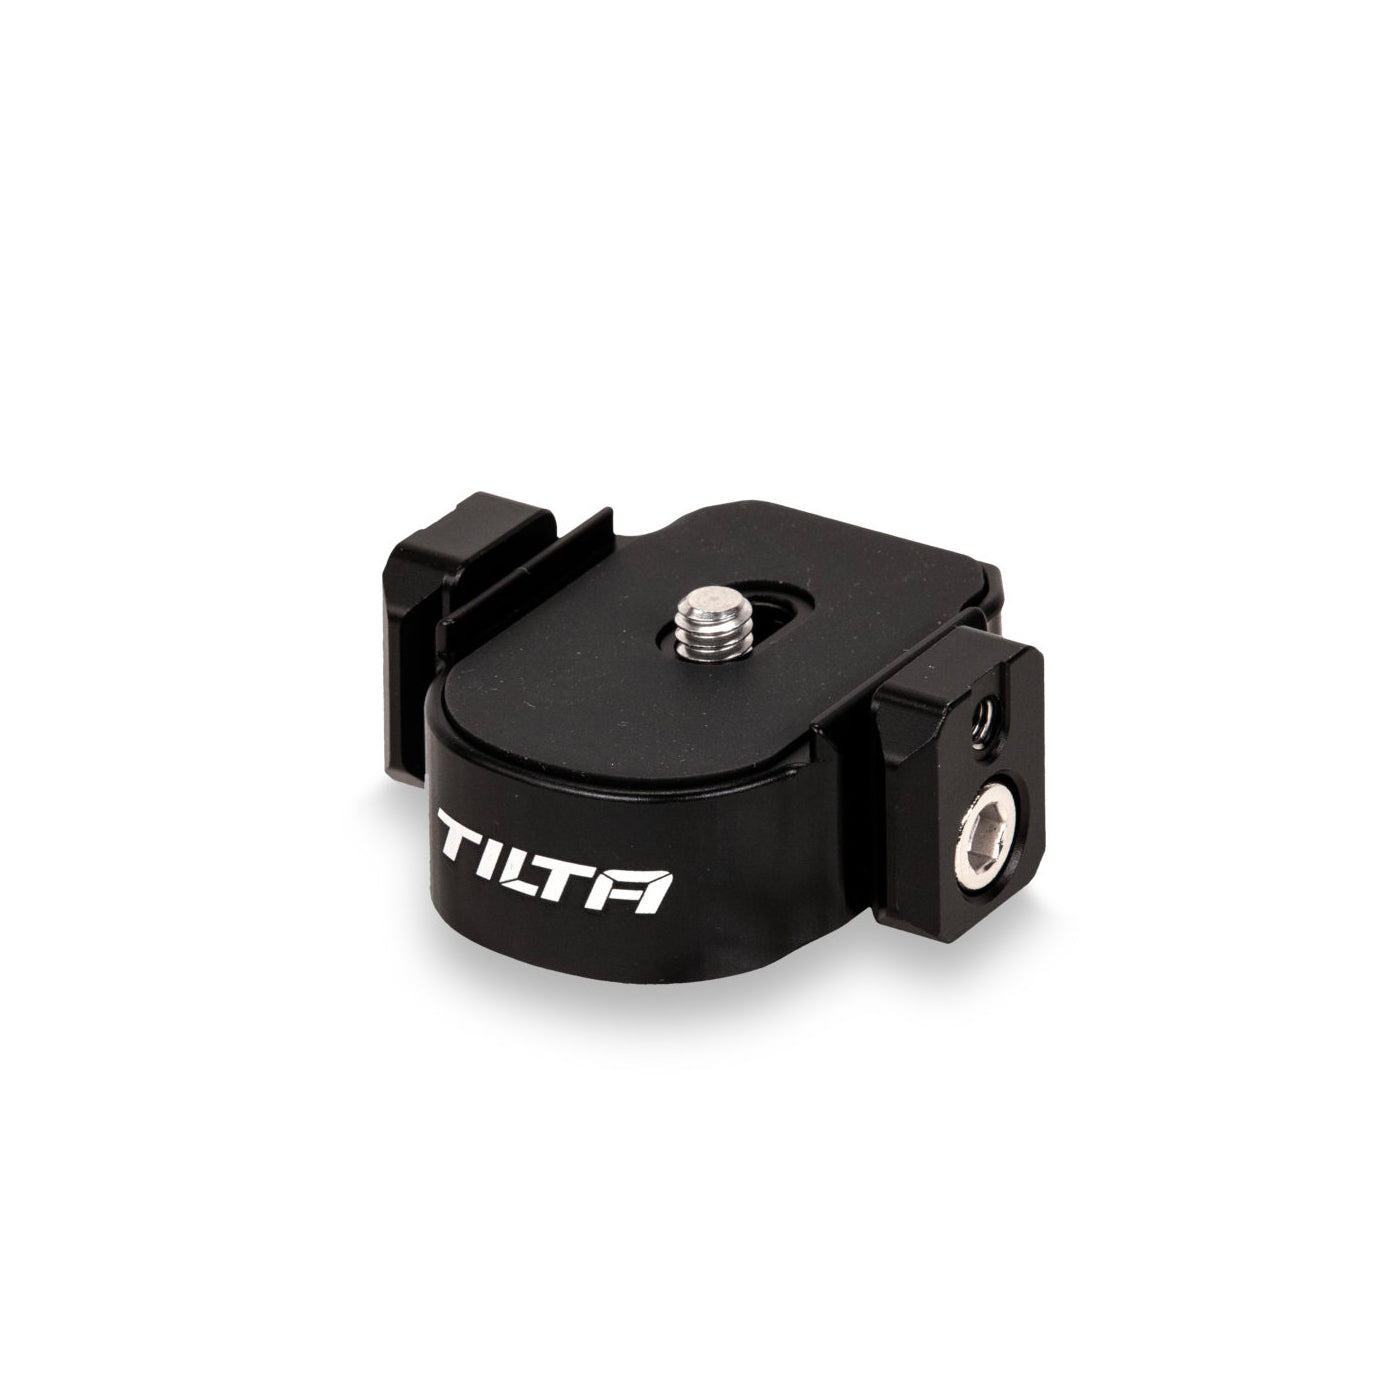 TILTA|Battery Handle Base Accessory Mounting Bracket(for DJI RS2)